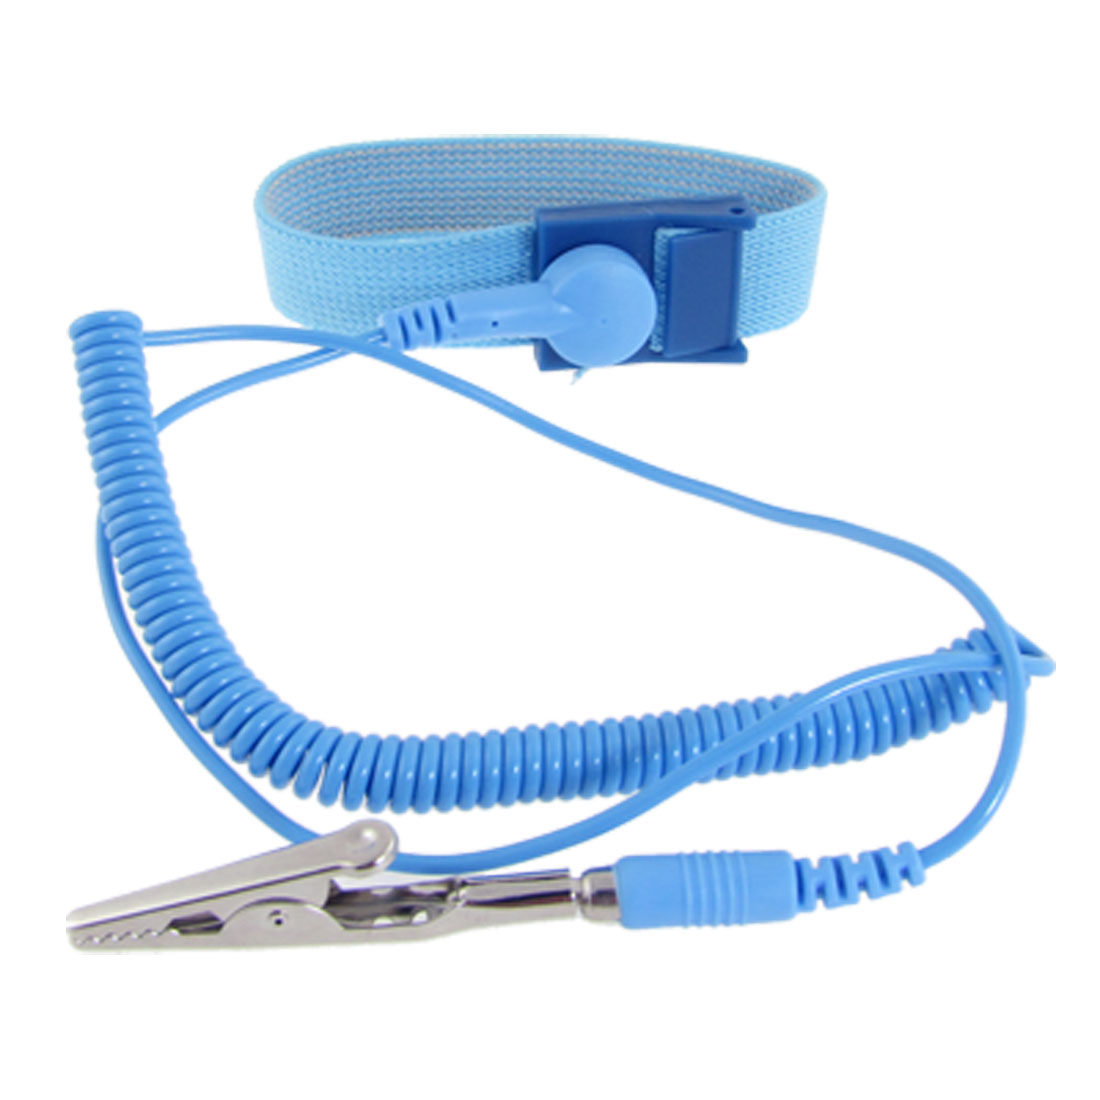 ESD Safe Anti Static Wrist Strap 53cm Ground Cord